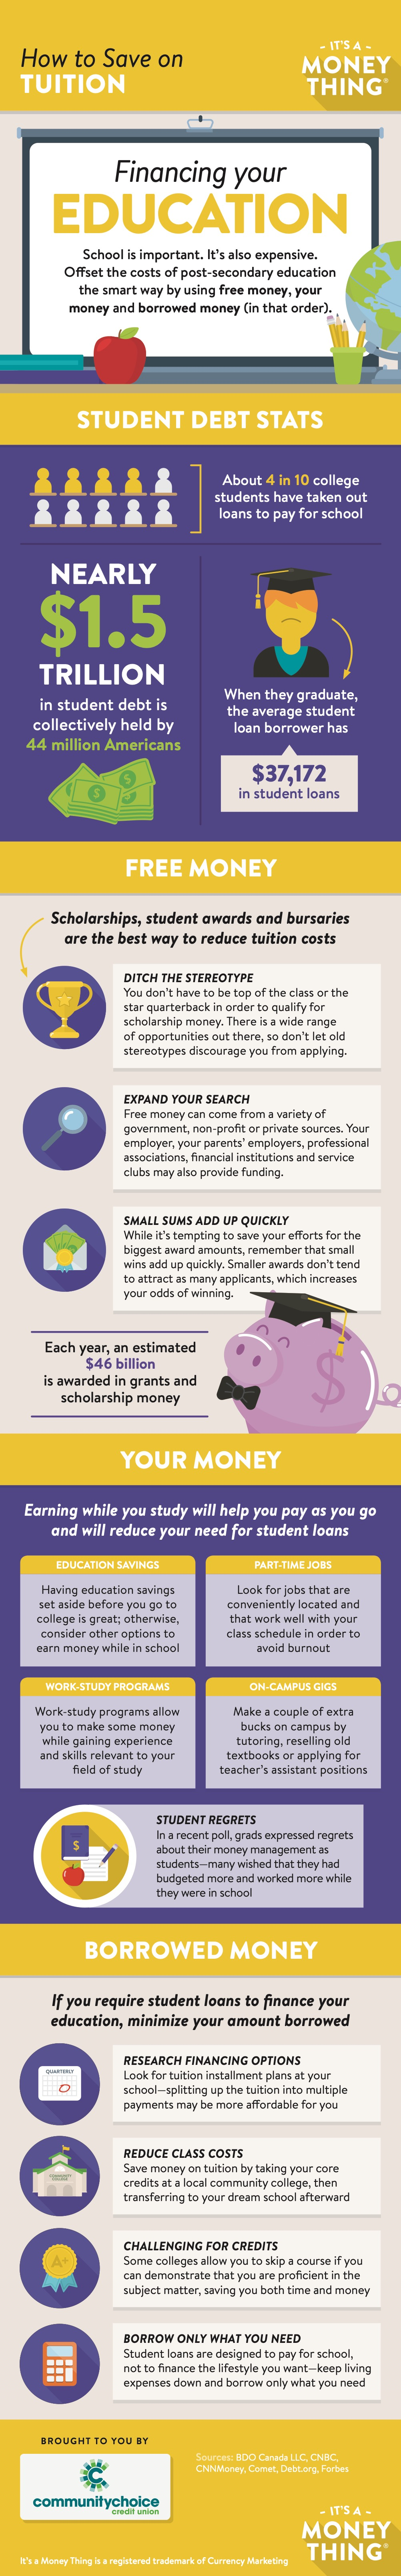 Financing Your Education infographic